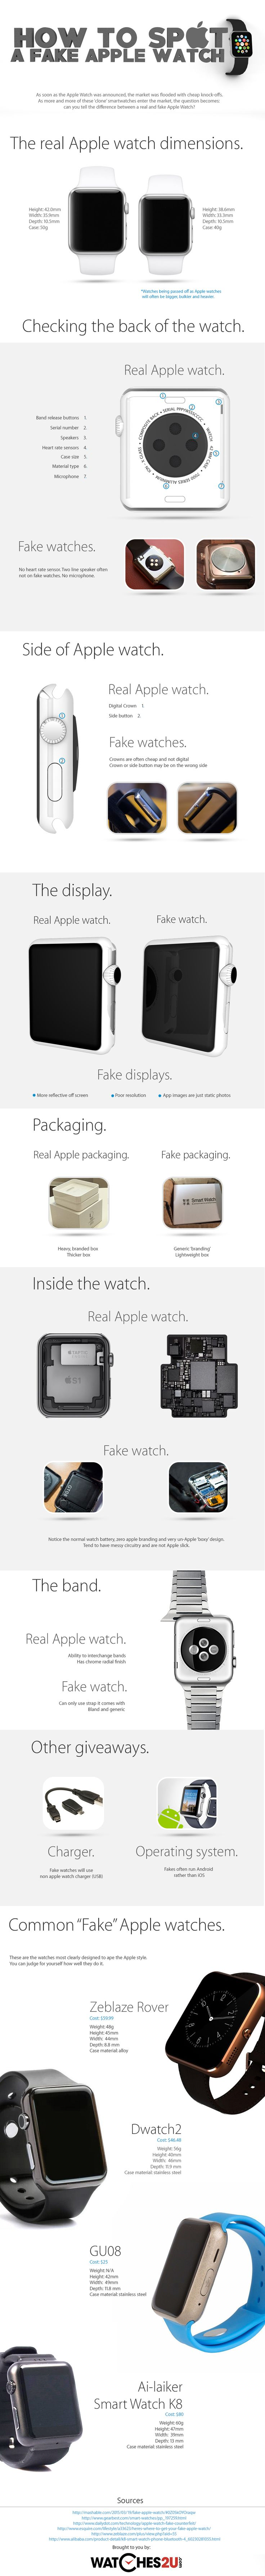 How To Spot a Fake #Apple #Watch (All Details Covered) | #watches #infographic